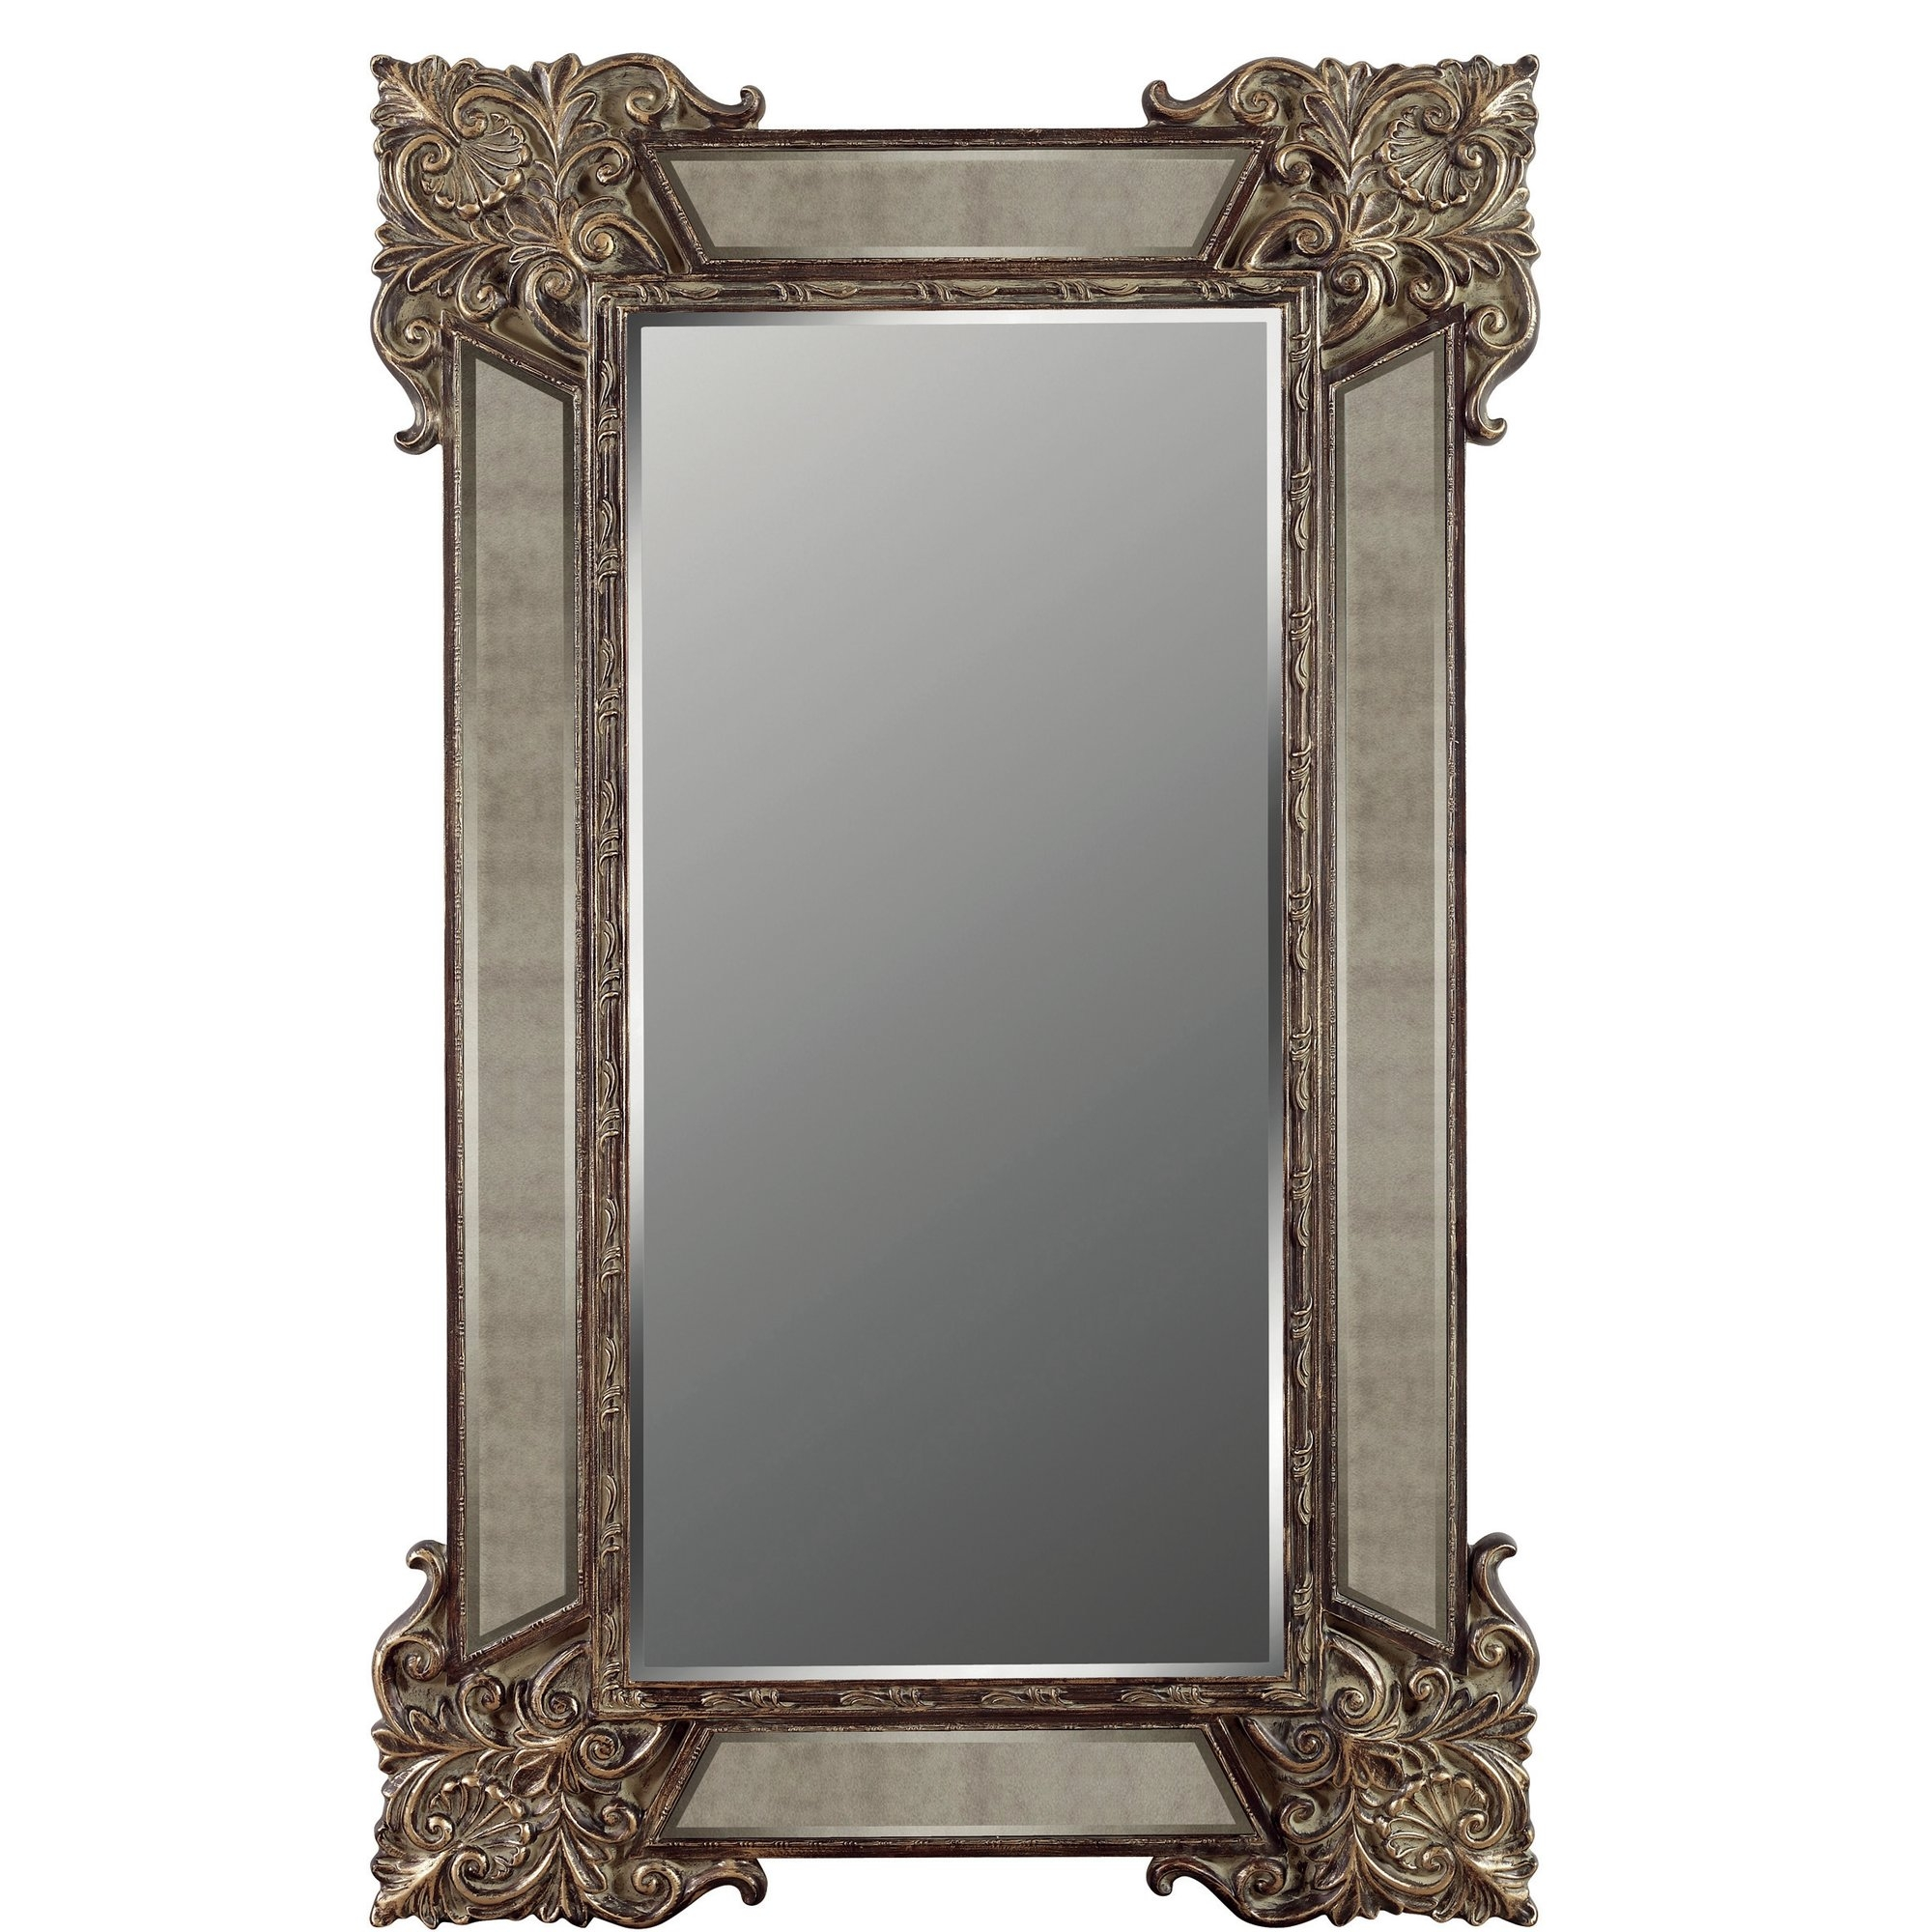 Galaxy Home Decoration Domingo Full Length Floor Mirror Wayfair For Antique Floor Length Mirror (View 11 of 15)